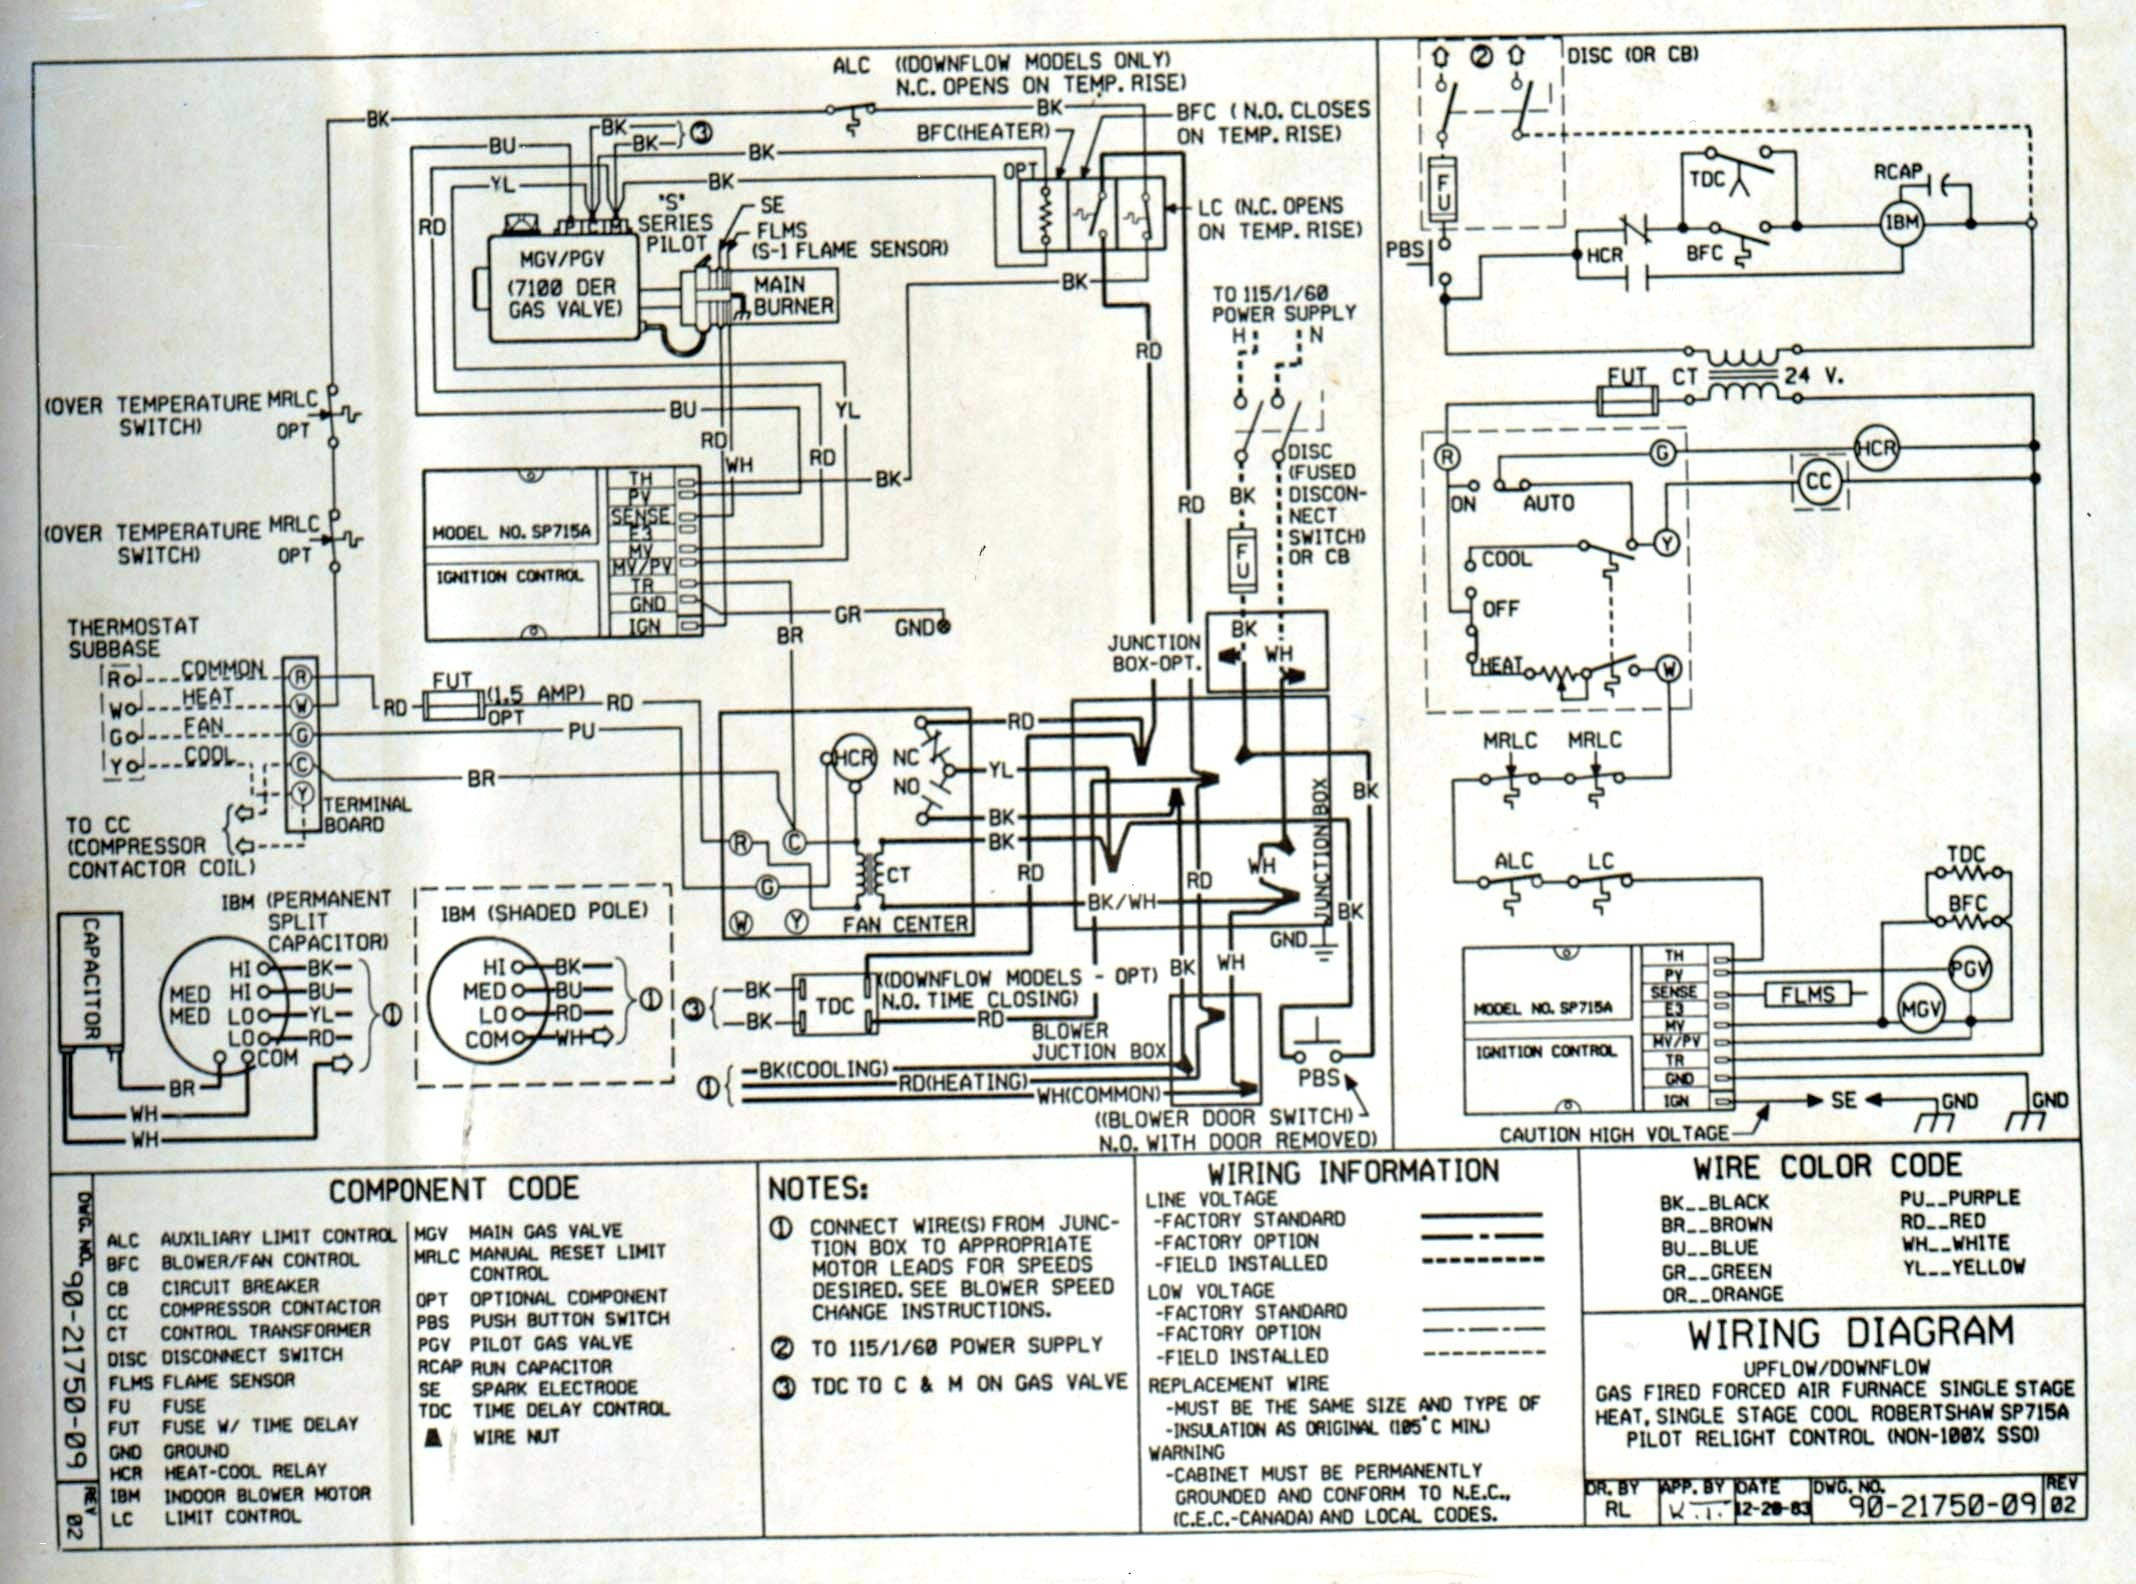 goodman gas furnace wiring diagram Collection Gas Furnace Wiring Diagram Unique Goodman Air Handler Wiring DOWNLOAD